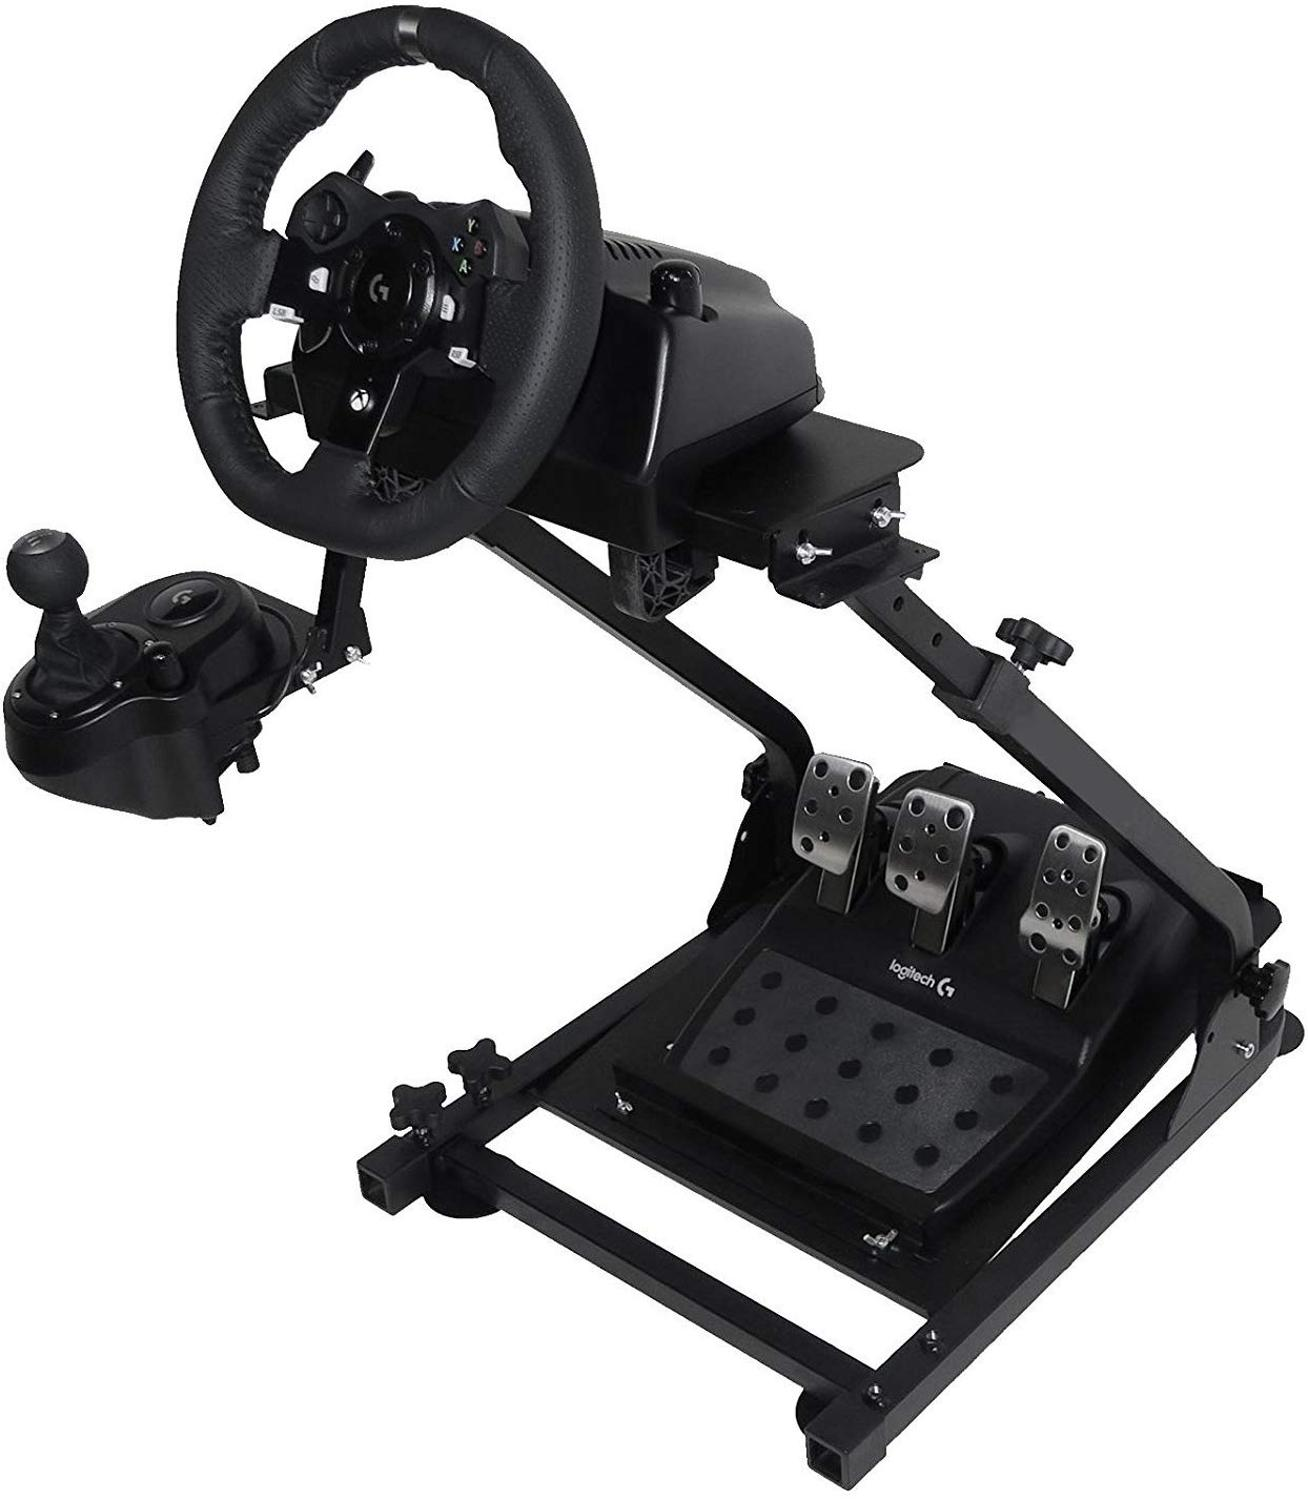 Free Shipping For EU USA  Self-Career Race Steering Wheel Support For Logitech G25 G27 G29 And G920 Folding Steering Wheel Stand